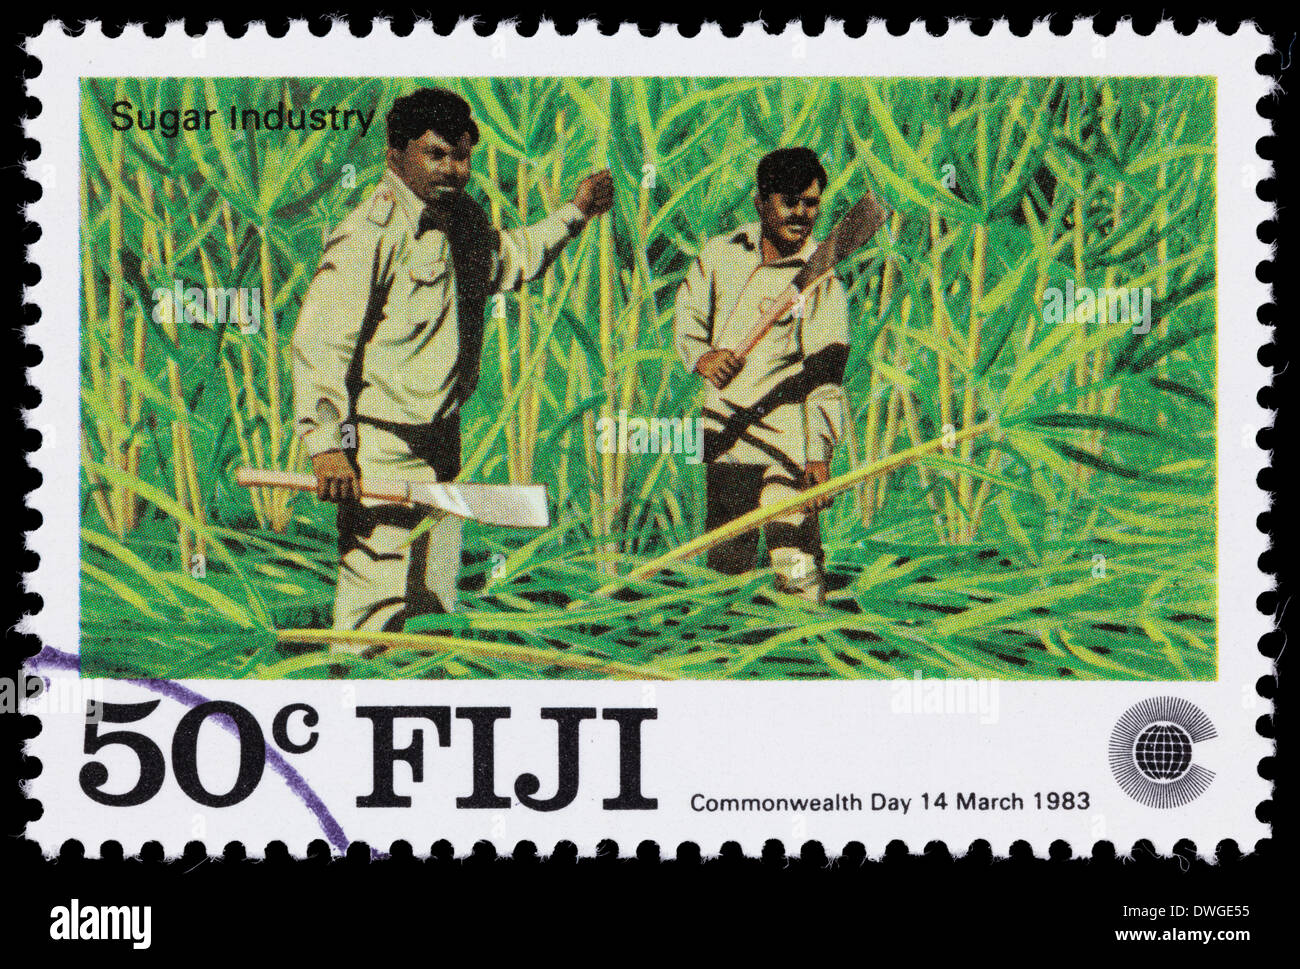 A 1983 Fiji postage stamp with an illustration of two mean harvesting sugar cane. - Stock Image